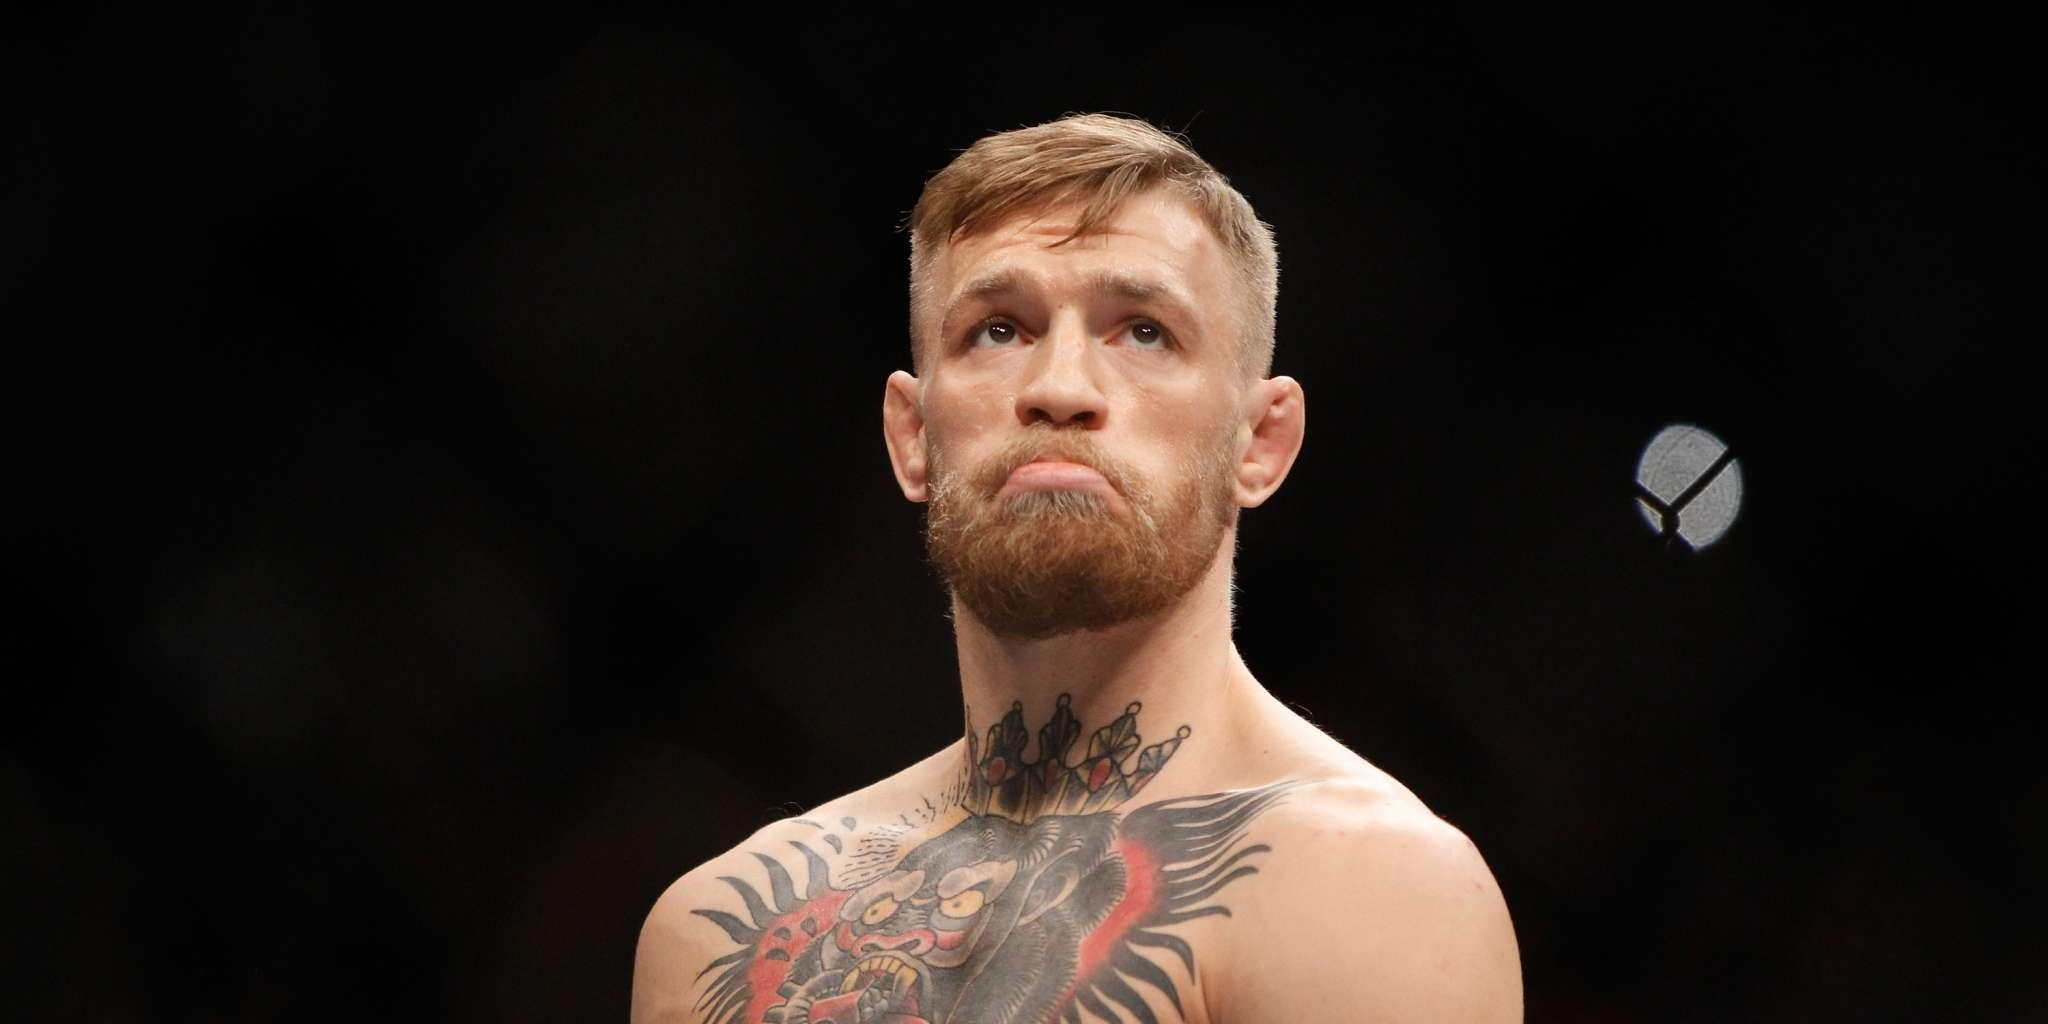 Conor McGregor Arrested & Charged With 'Strong-Armed Robbery' - He Slapped A Phone Out Of A Fan's Hands And Stomped On It